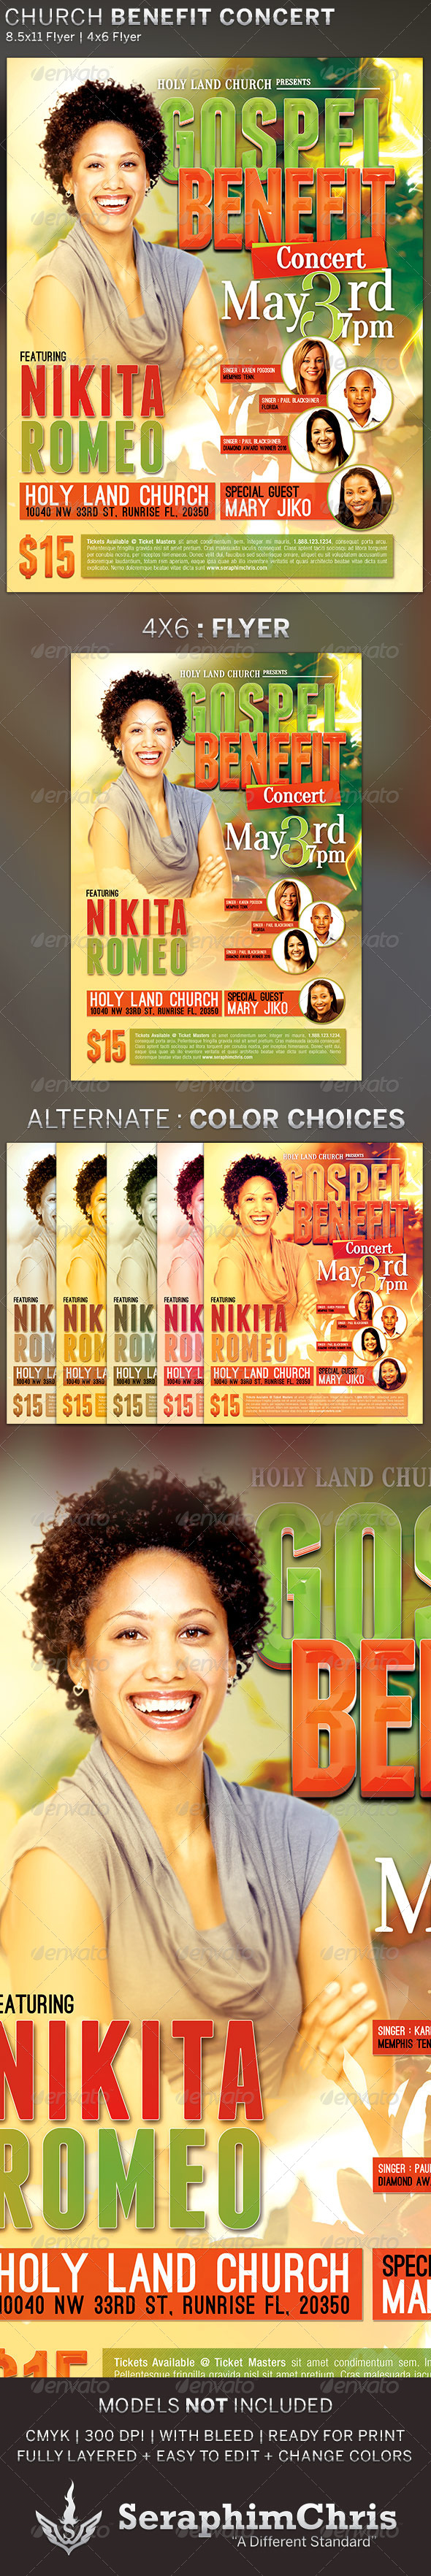 Gospel Benefit Concert: Church Flyer Template - Church Flyers